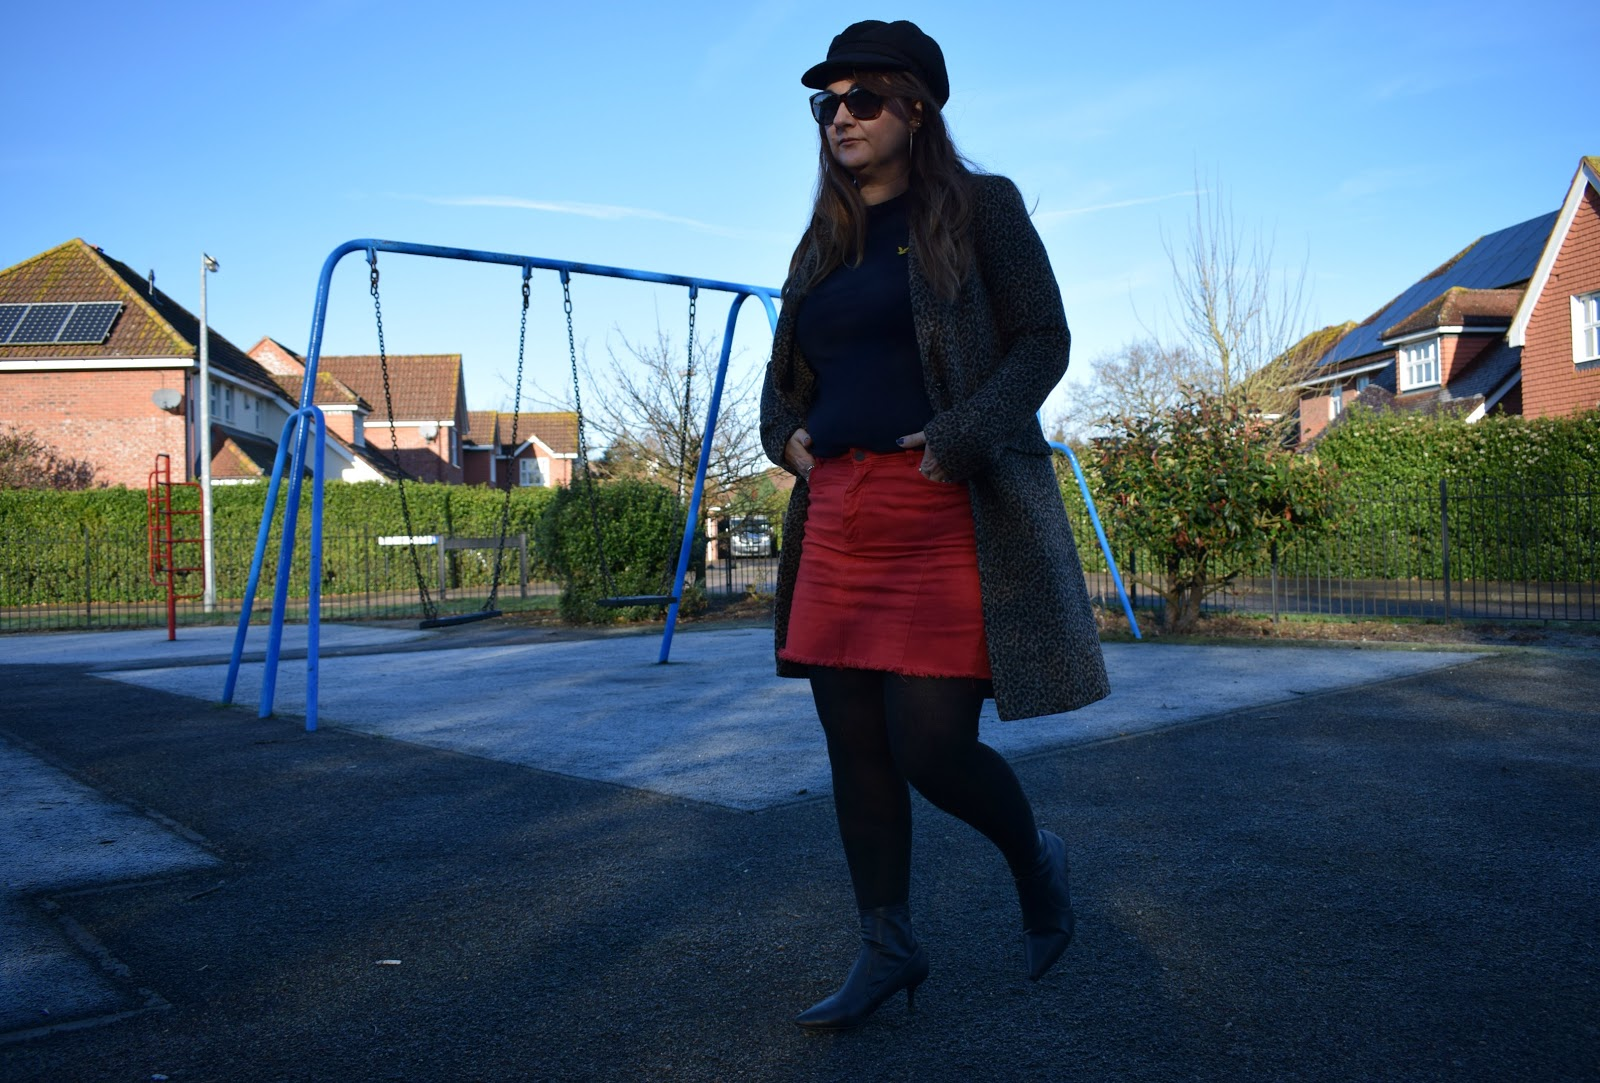 styling a red denim skirt